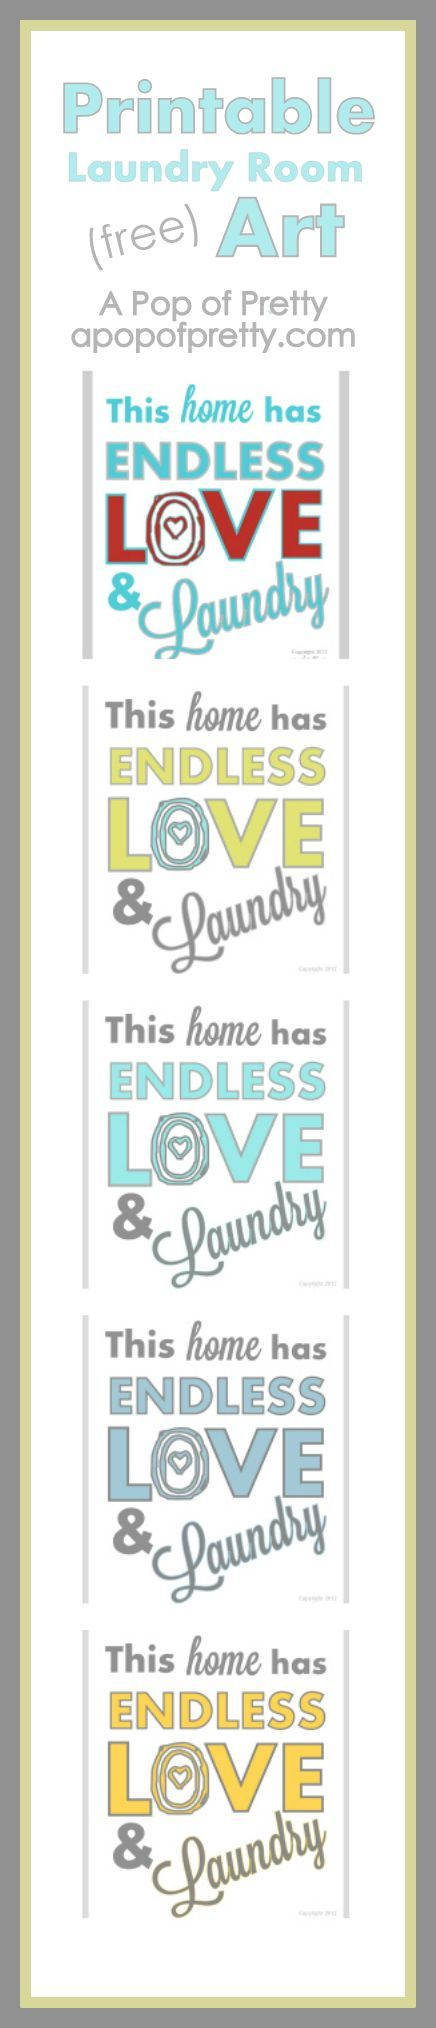 Free printable art for a laundry room in a bunch of new colors, from A Pop of Pretty, apopofpretty.com.